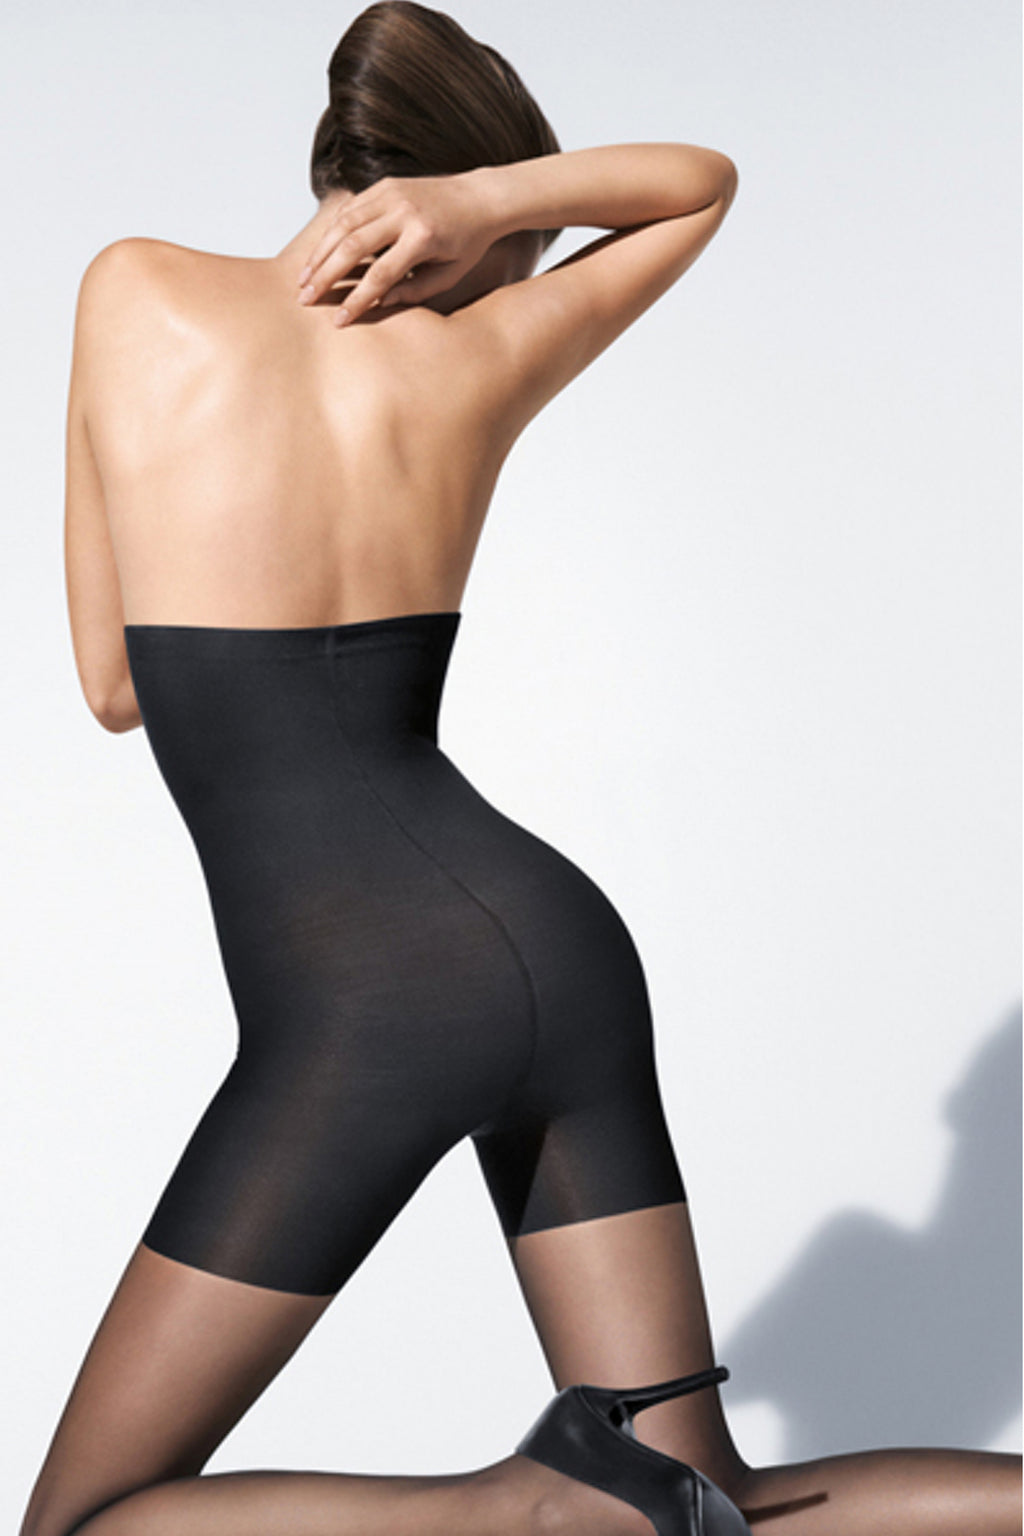 Wolford Shape Up 10 Control Top Tights